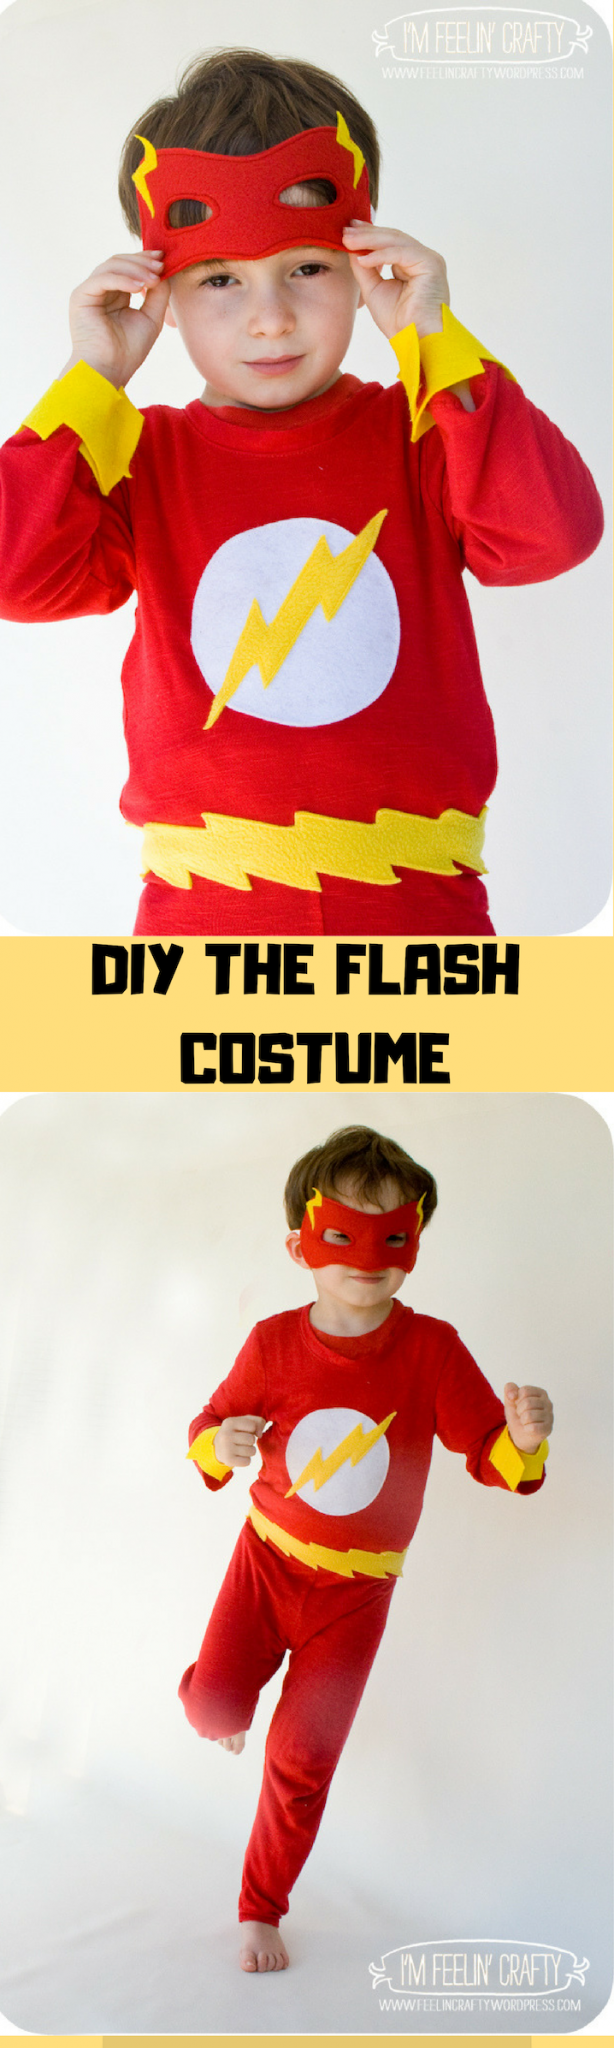 funny superhero costume ideas